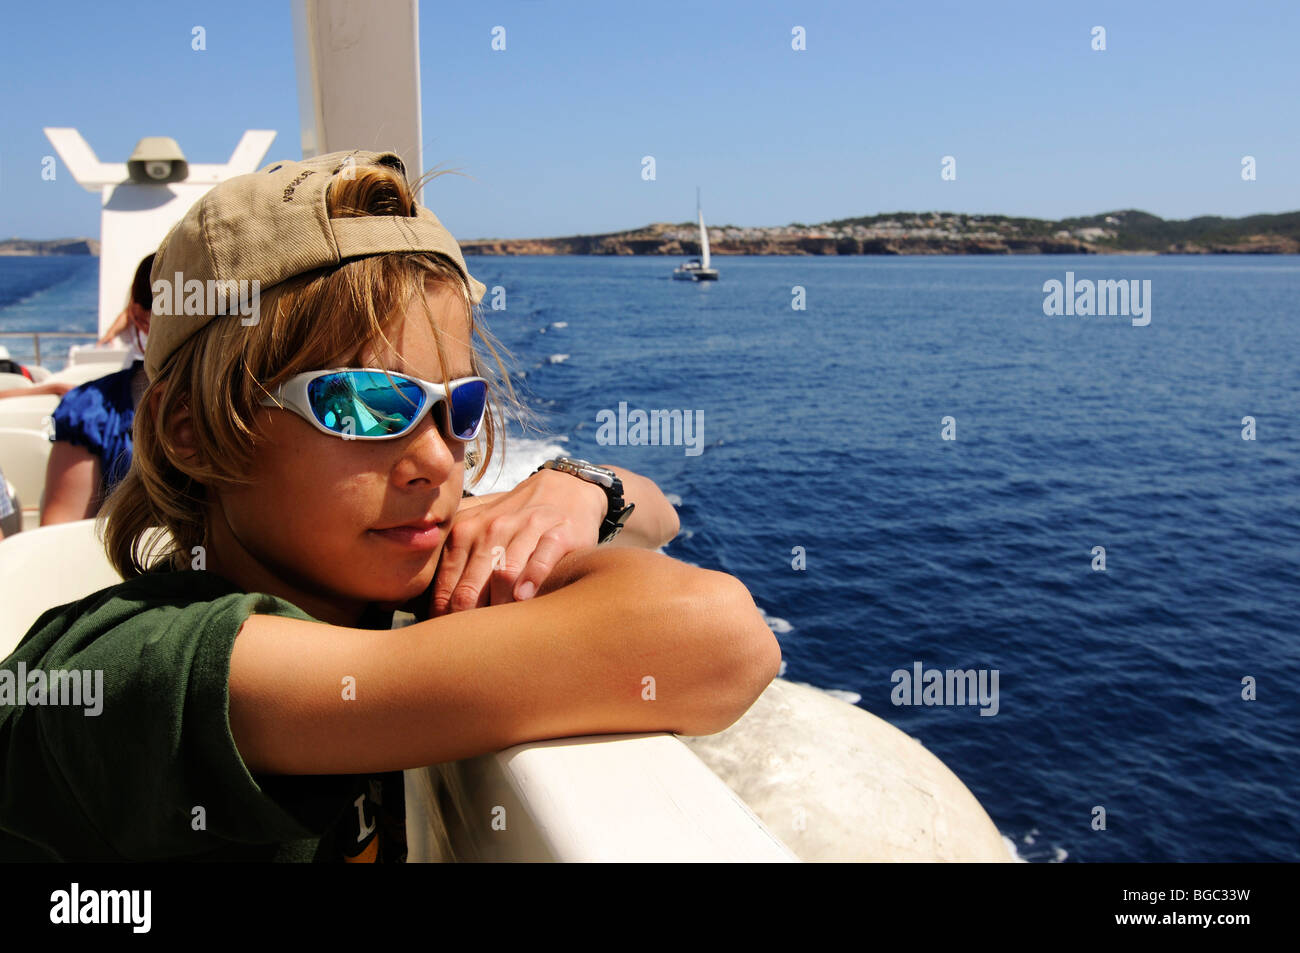 Boy on a tour boat, Ibiza, Pine Islands, Balearic Islands, Spain, Europe - Stock Image